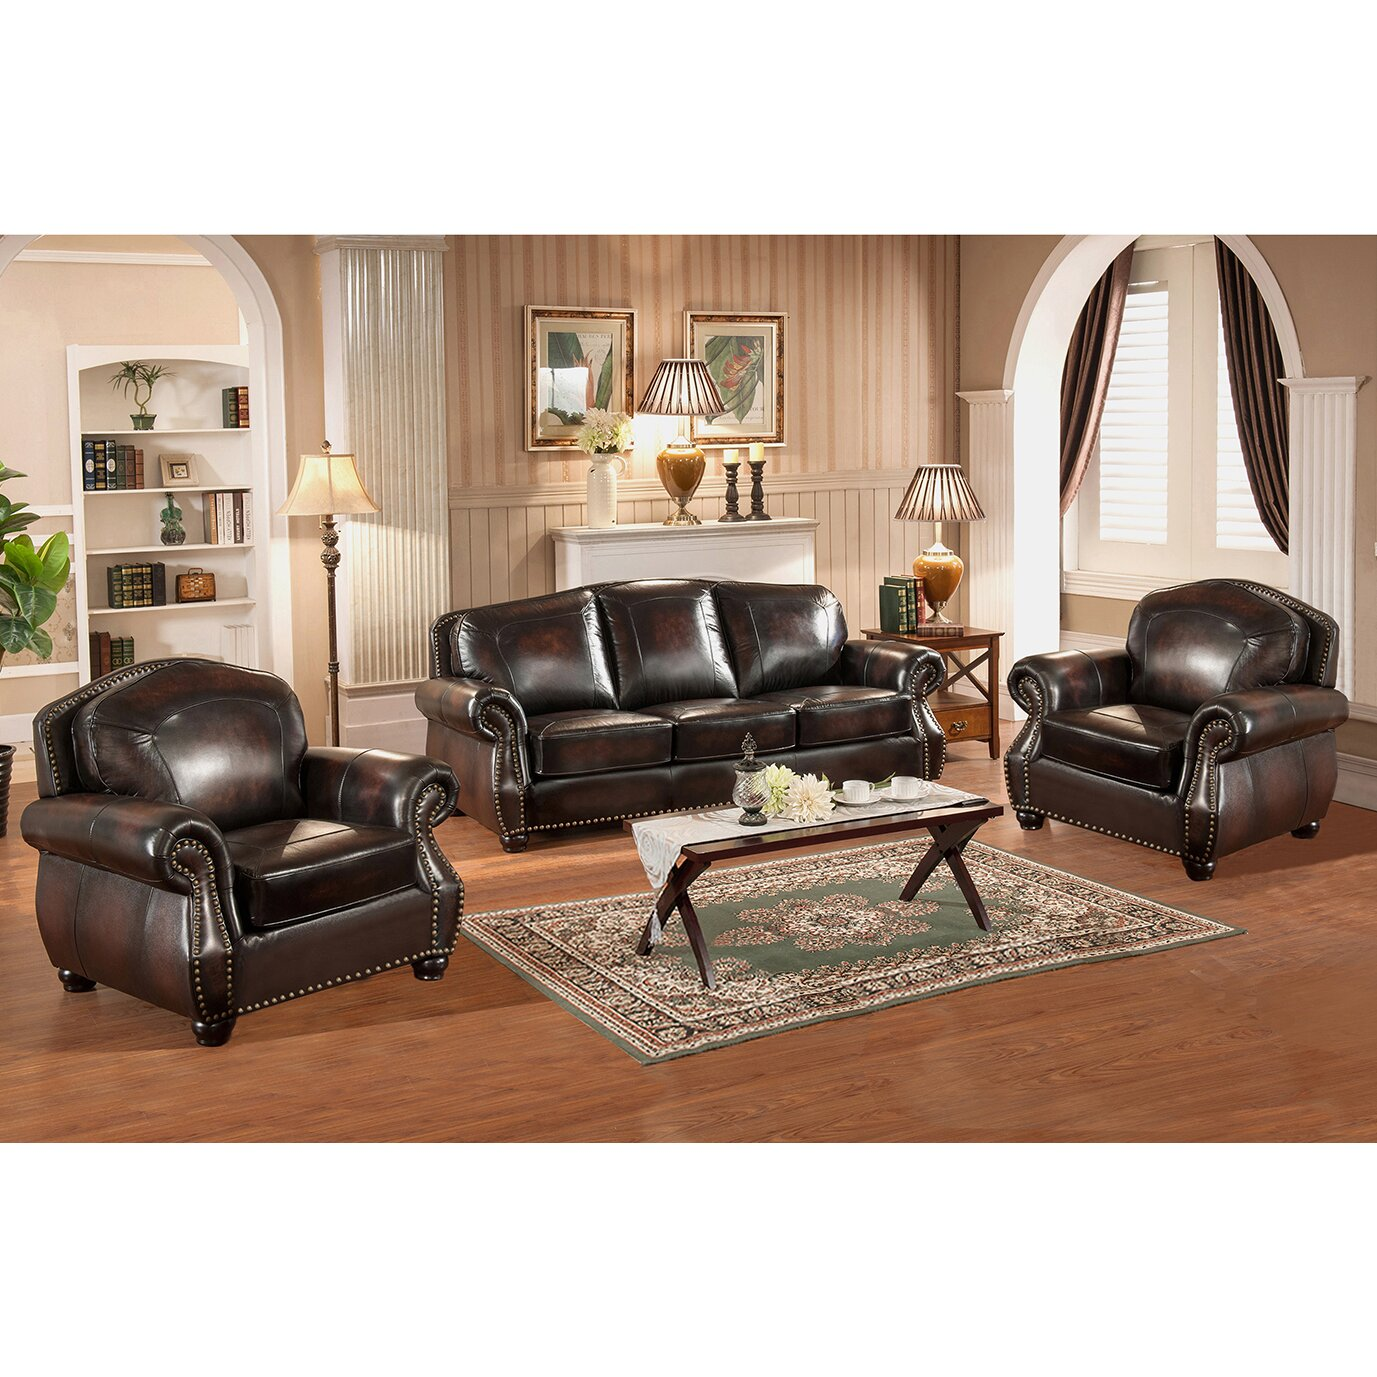 3 piece leather living room set amax vail 3 leather living room set wayfair ca 24609